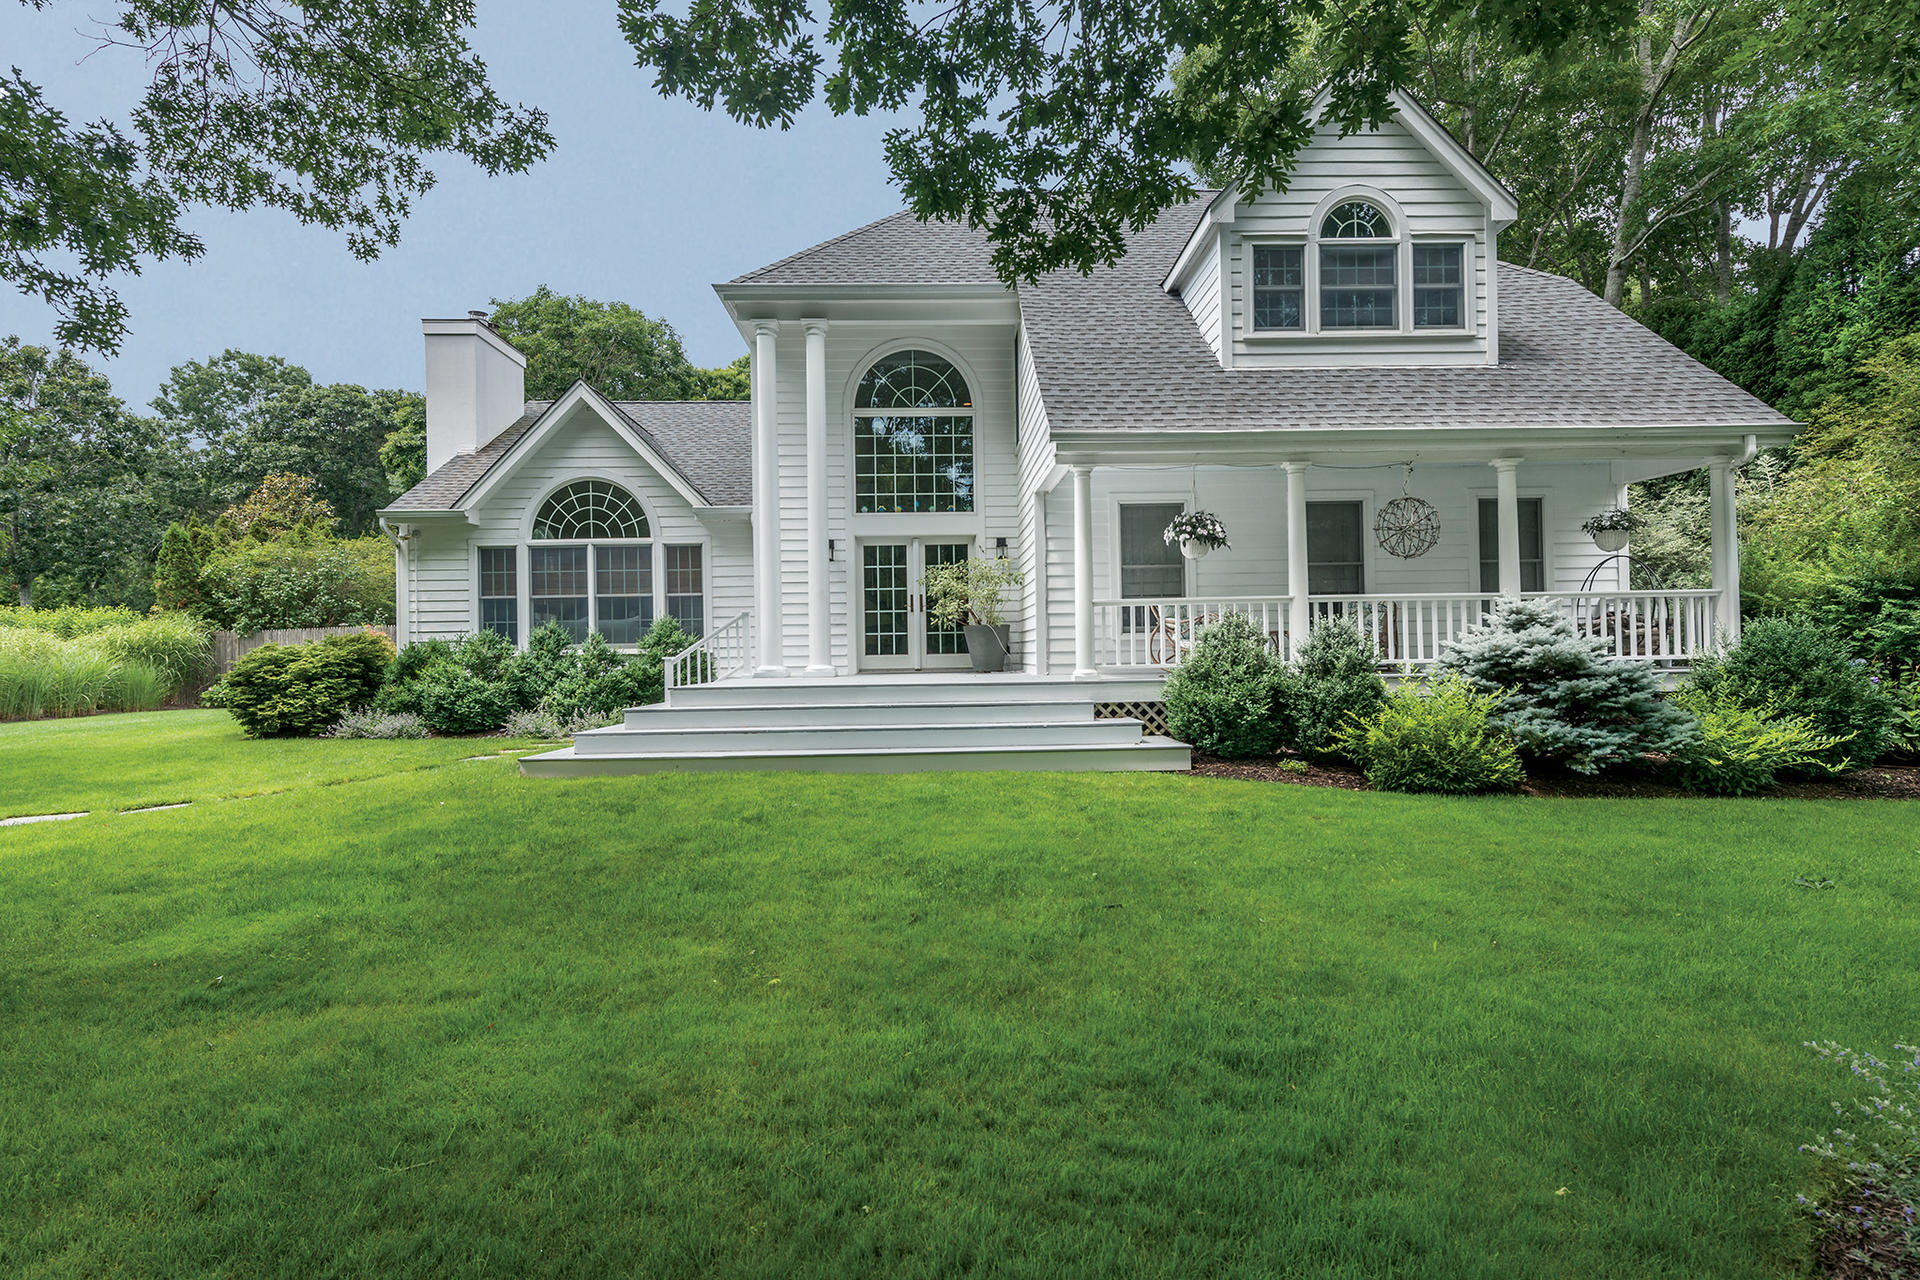 Single Family Home for Sale at Bridgehampton Ideal: Style, Substance And Setting 21 Woodruff Lane, Bridgehampton, New York